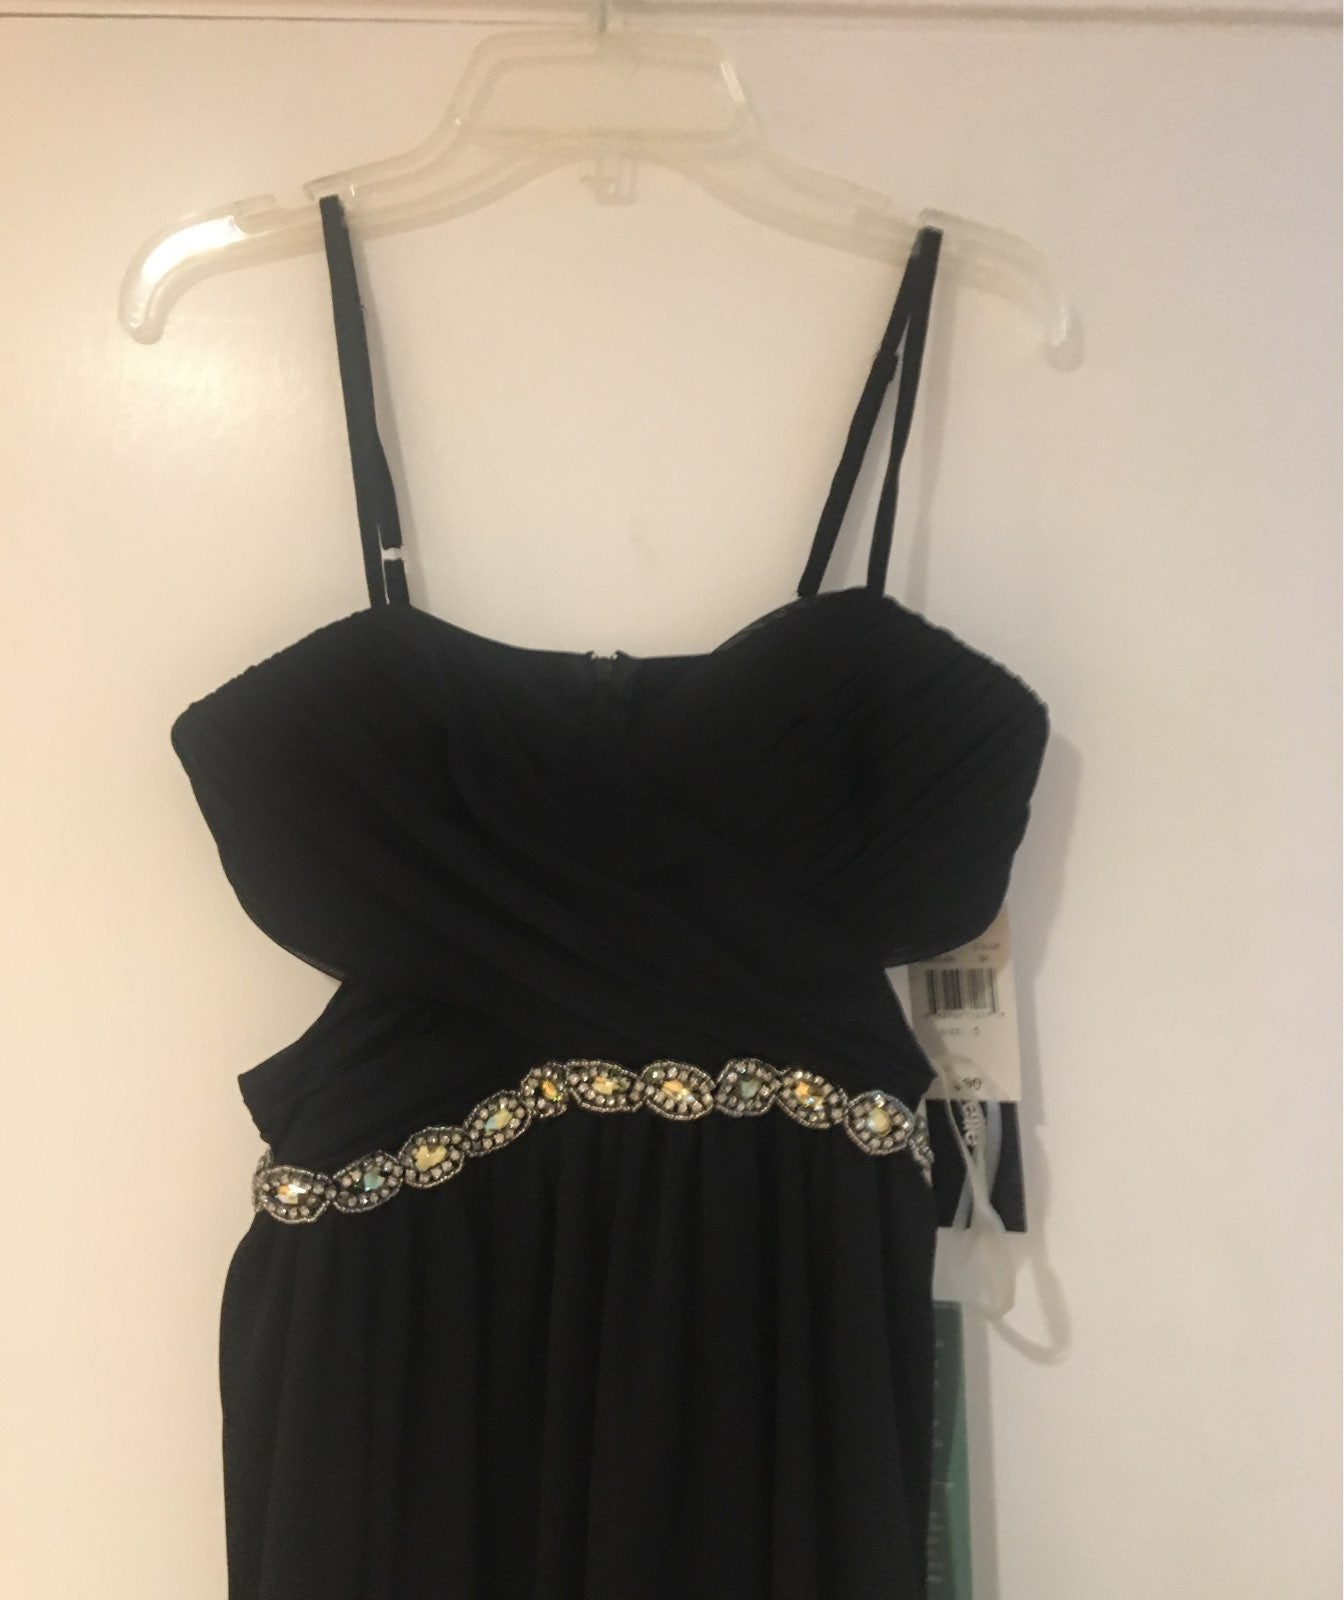 dresses for party (knee length)